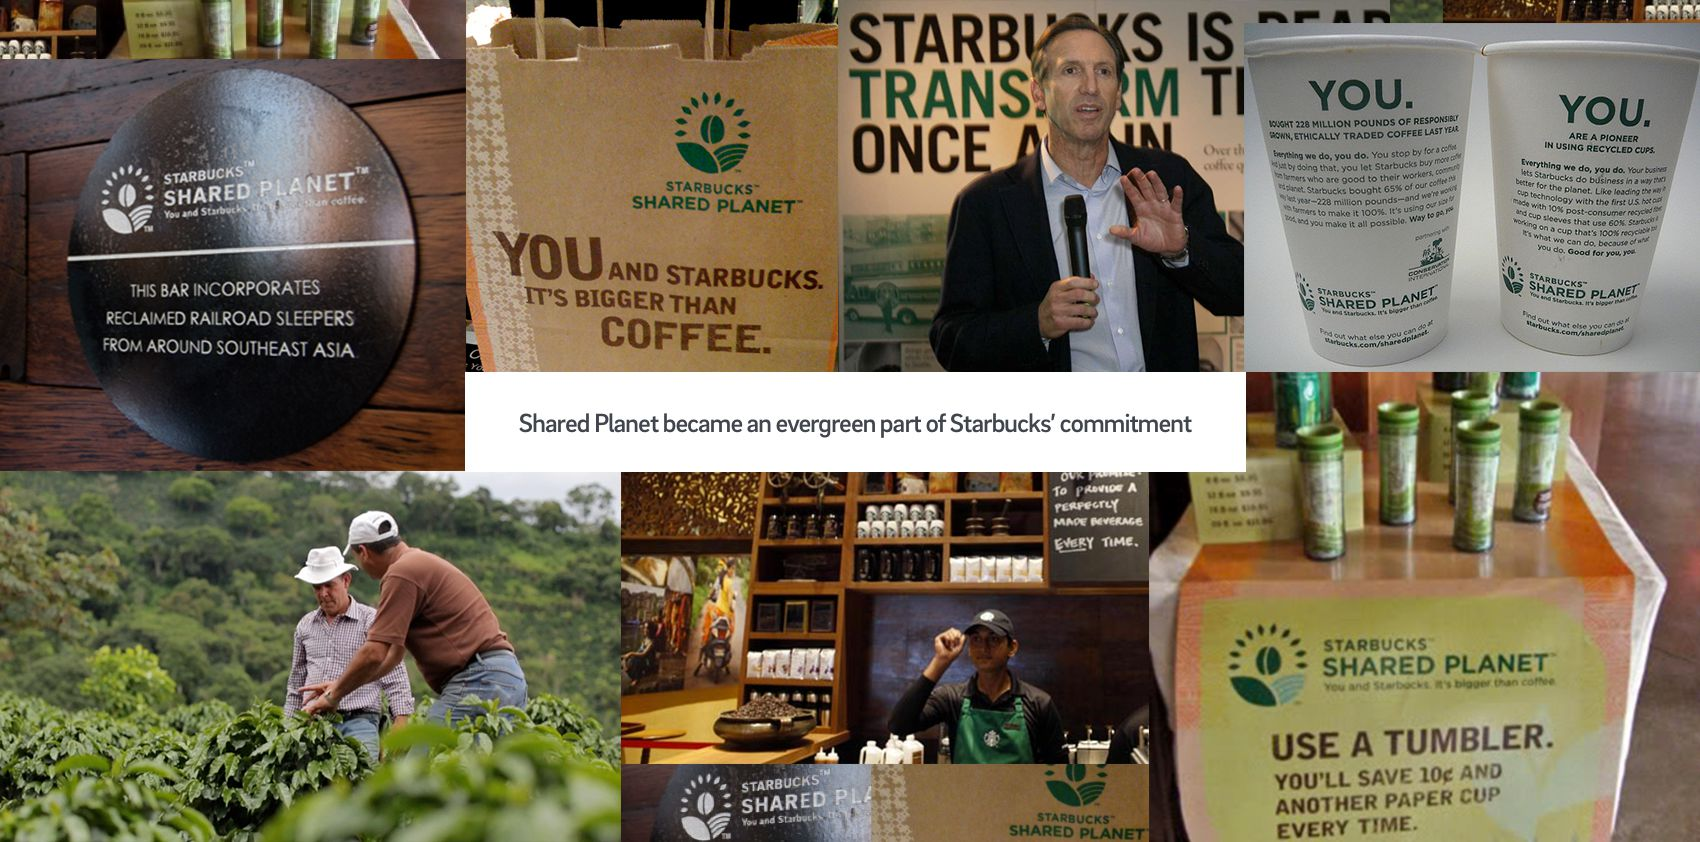 starbucks situation analysis According to the swot analysis, starbucks has plenty of opportunities to take swot analysis of starbucks swot analysis examples for every business situation.